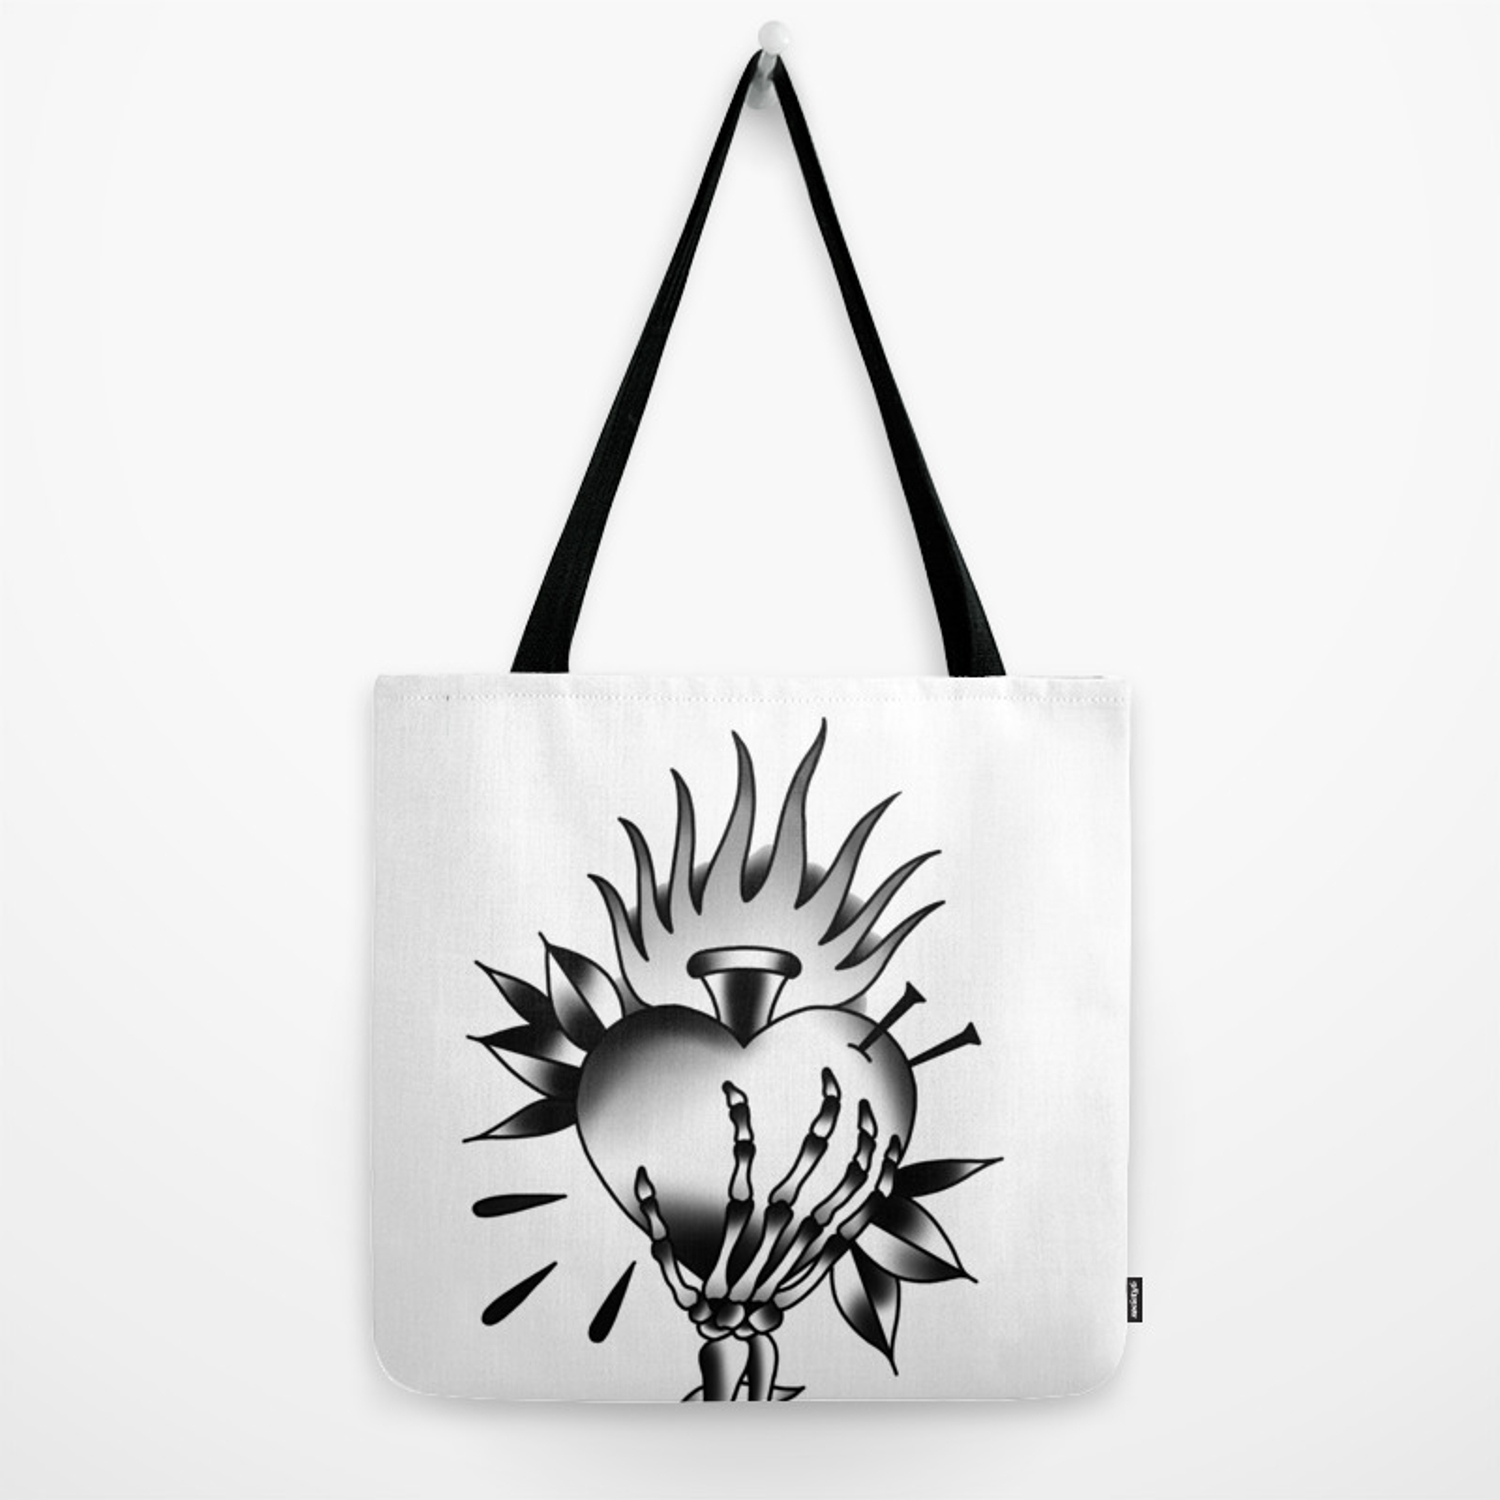 1500x1500 Tattoo Tradition Art Keep My Heart Hand Designs Drawing Craft Tote